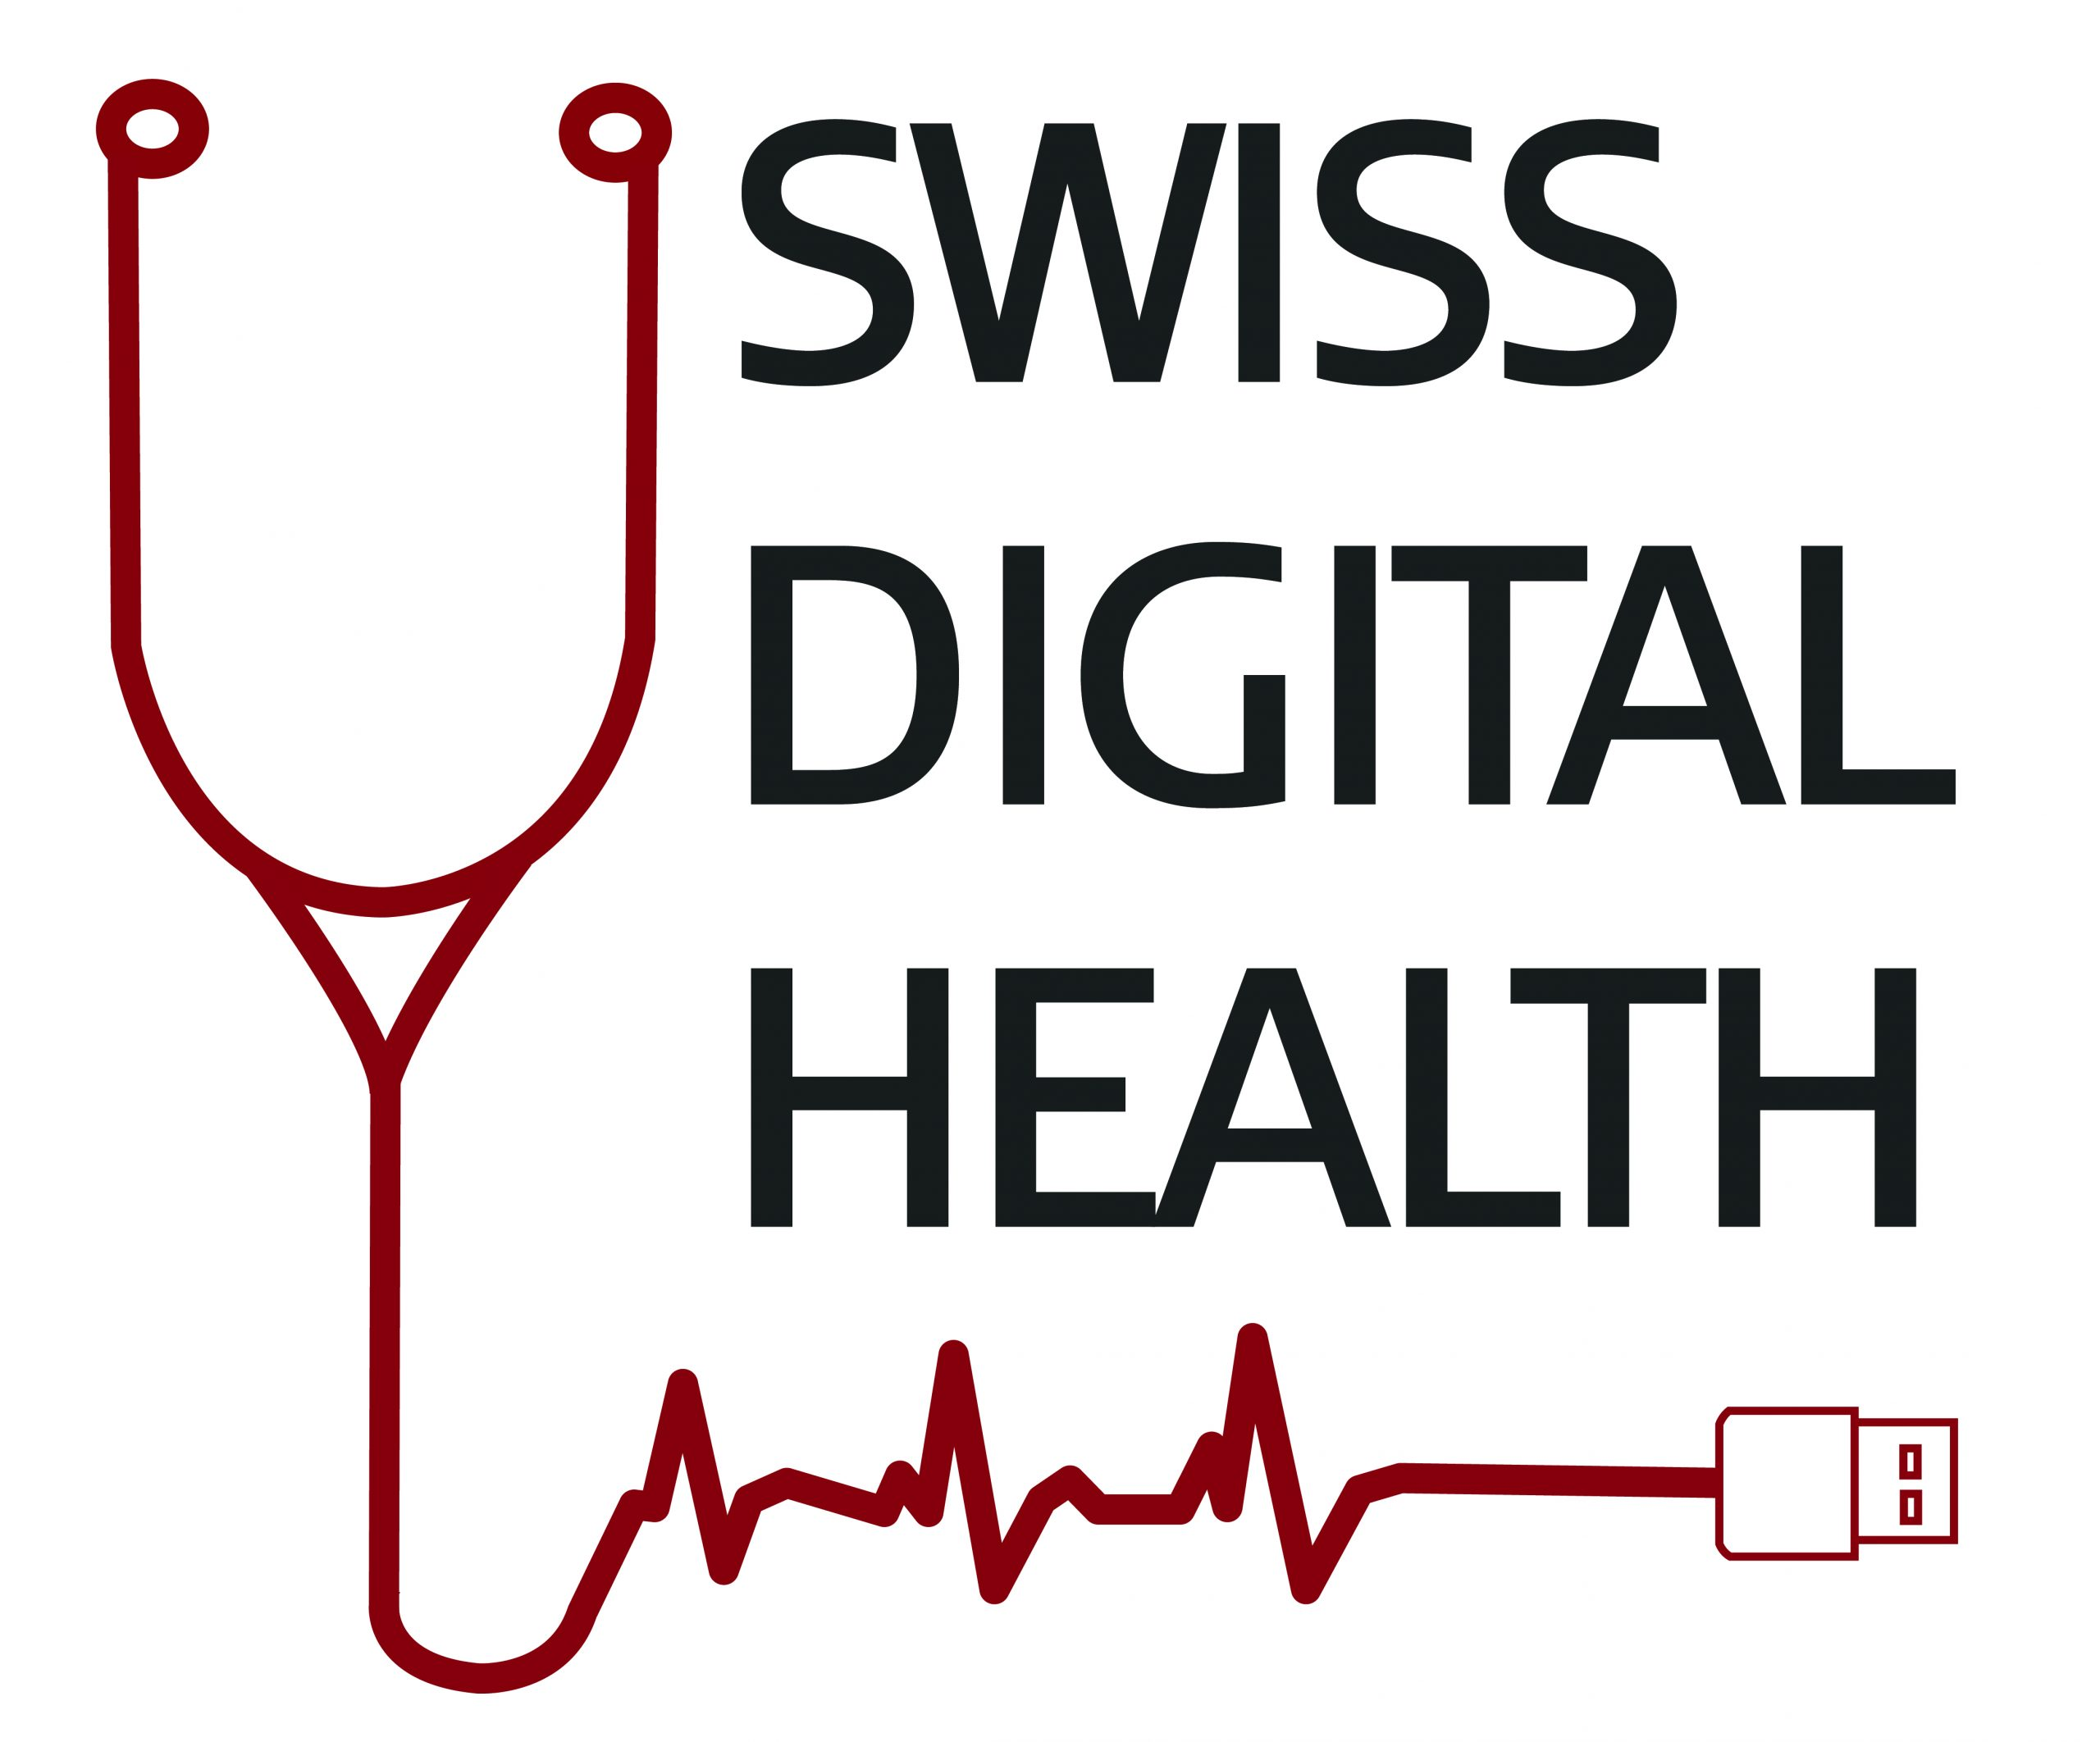 Swiss Digital Health